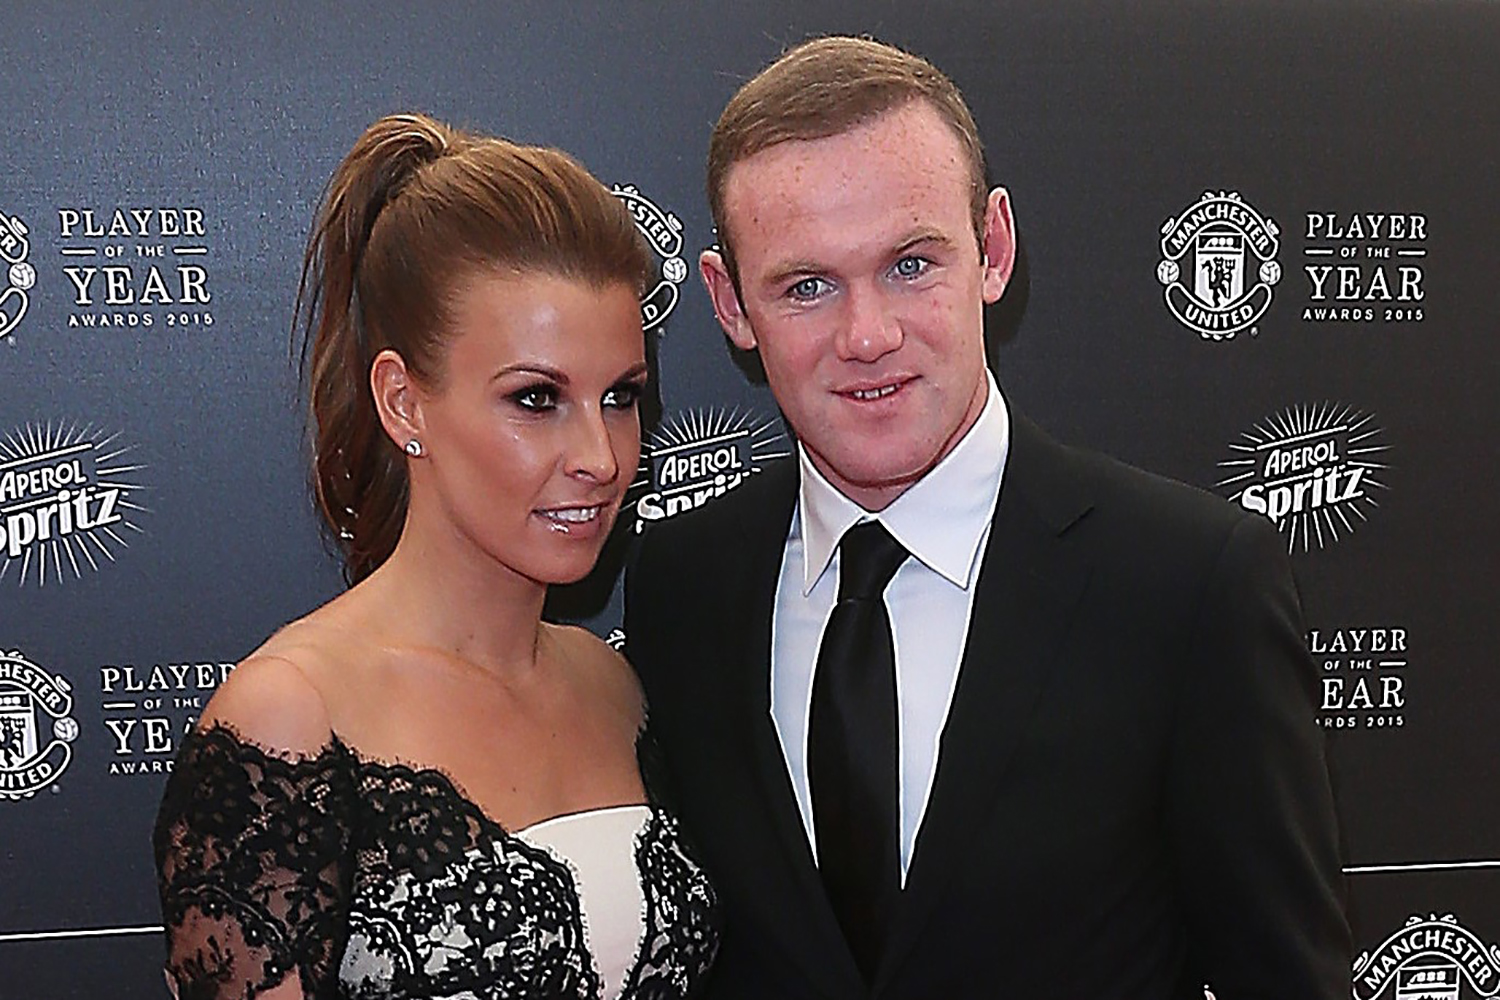 Coleen Rooney shares wedding photo to celebrate 12th anniversary with husband Wayne